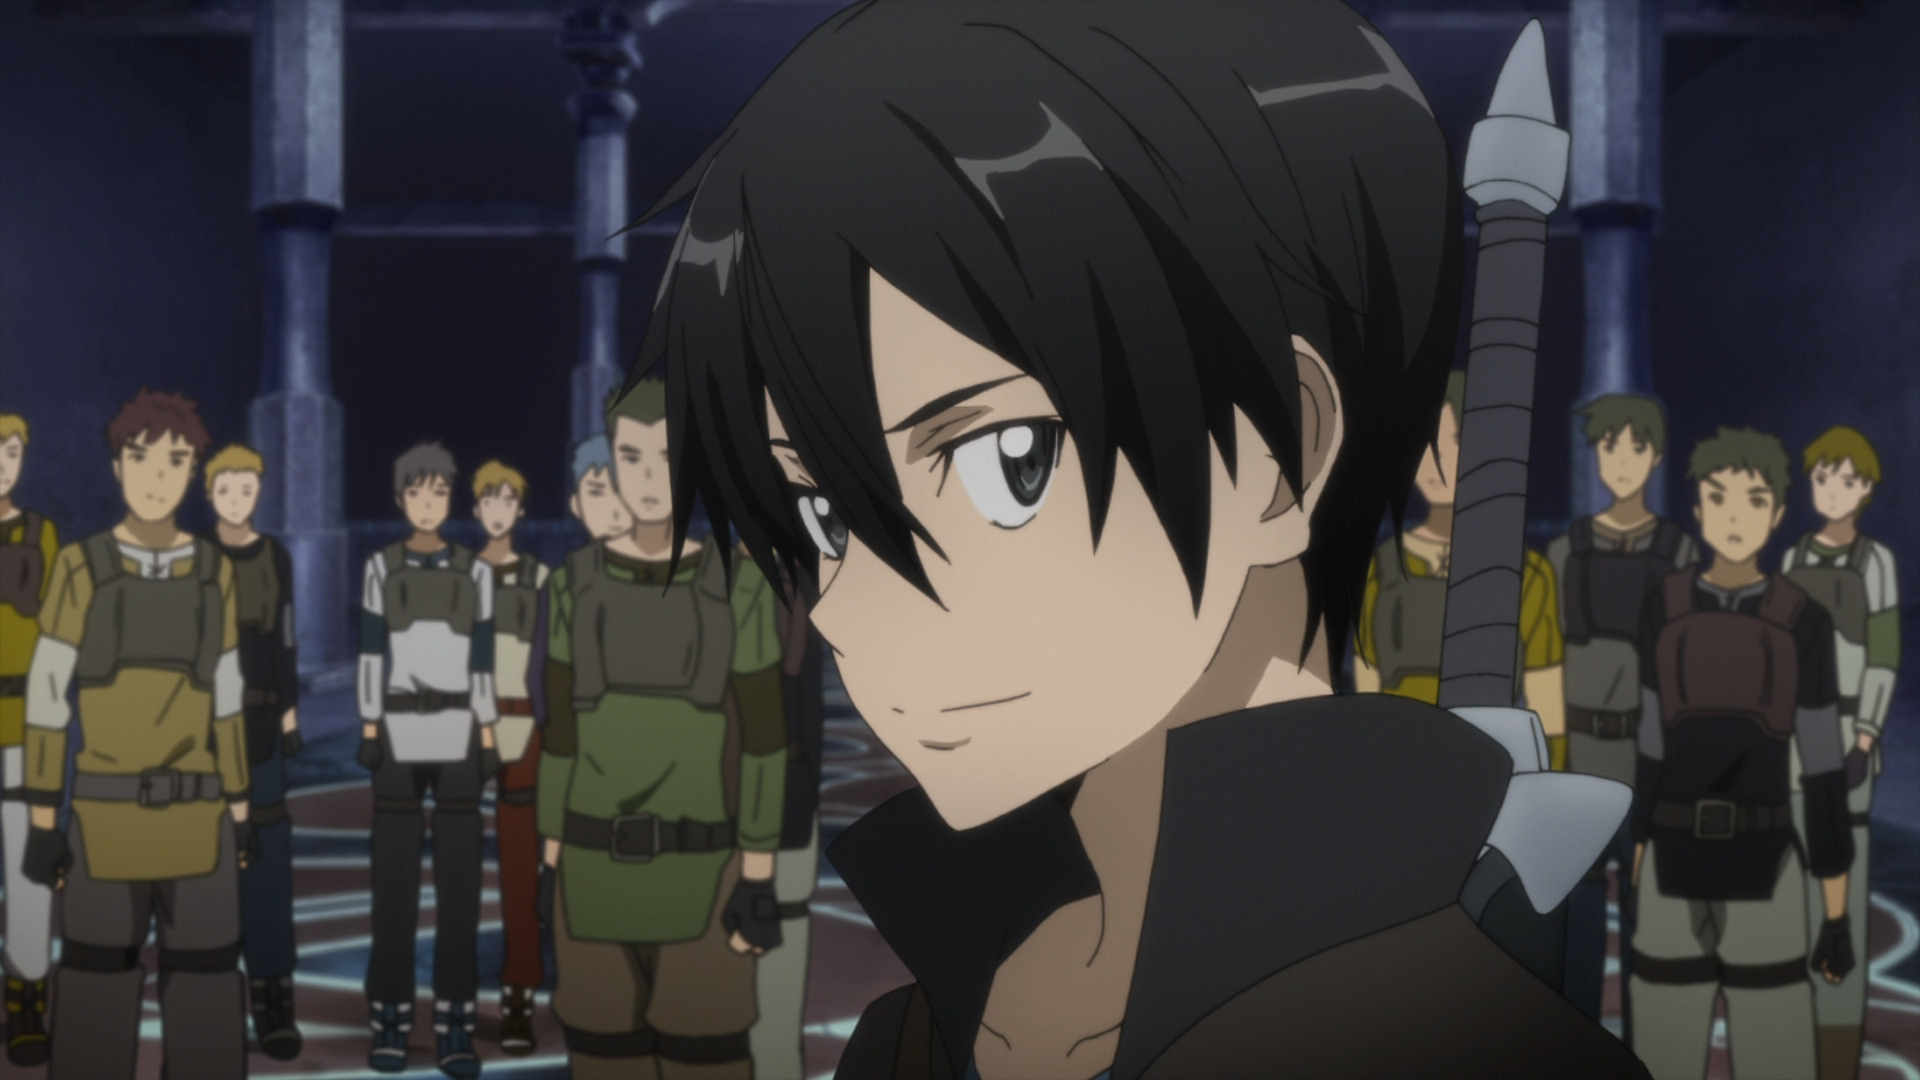 https://vignette.wikia.nocookie.net/swordartonline/images/5/5b/Beater.png/revision/latest?cb=20130622011938